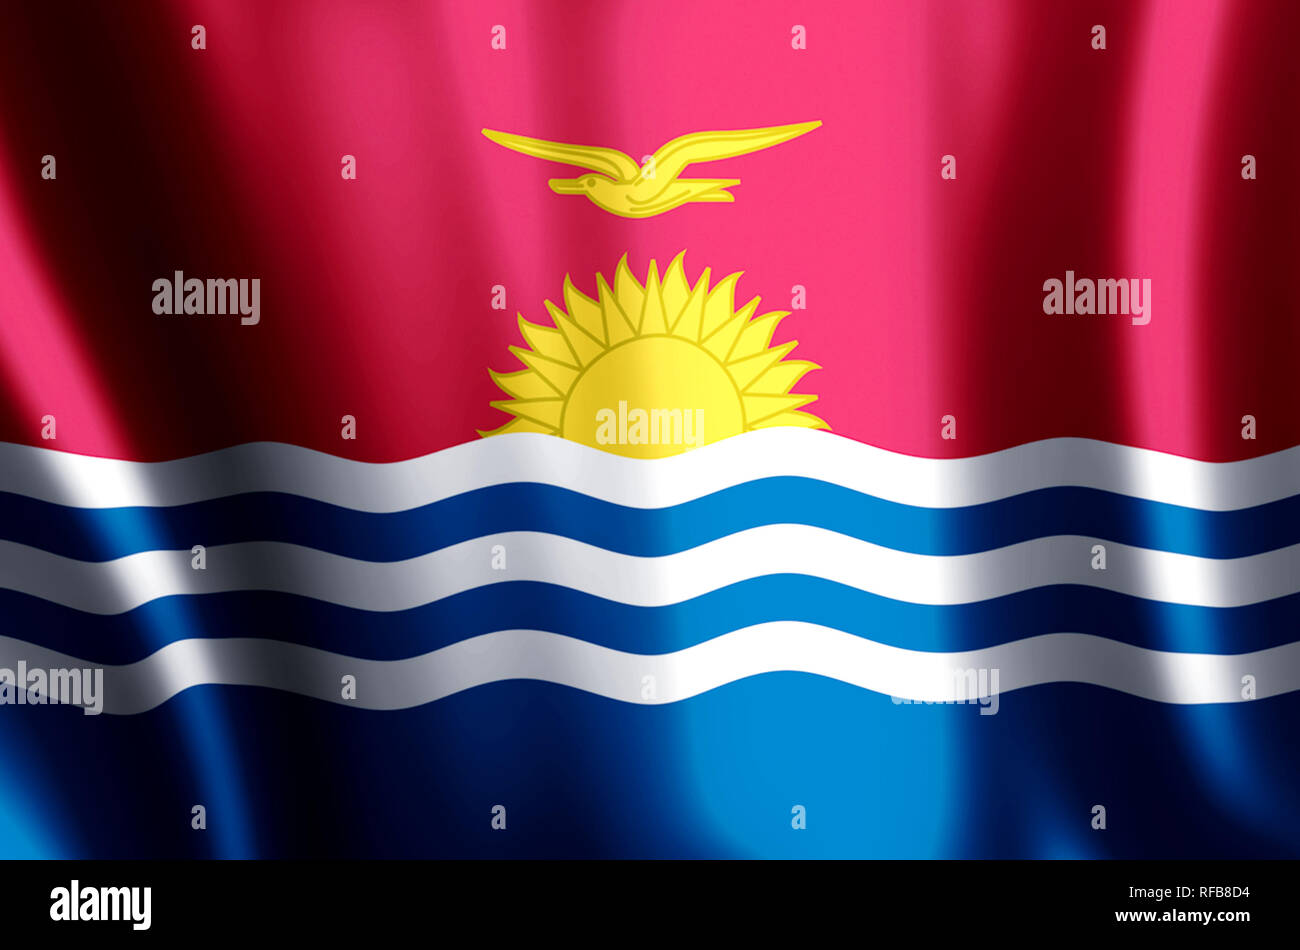 Kiribati stylish waving and closeup flag illustration. Perfect for background or texture purposes. - Stock Image